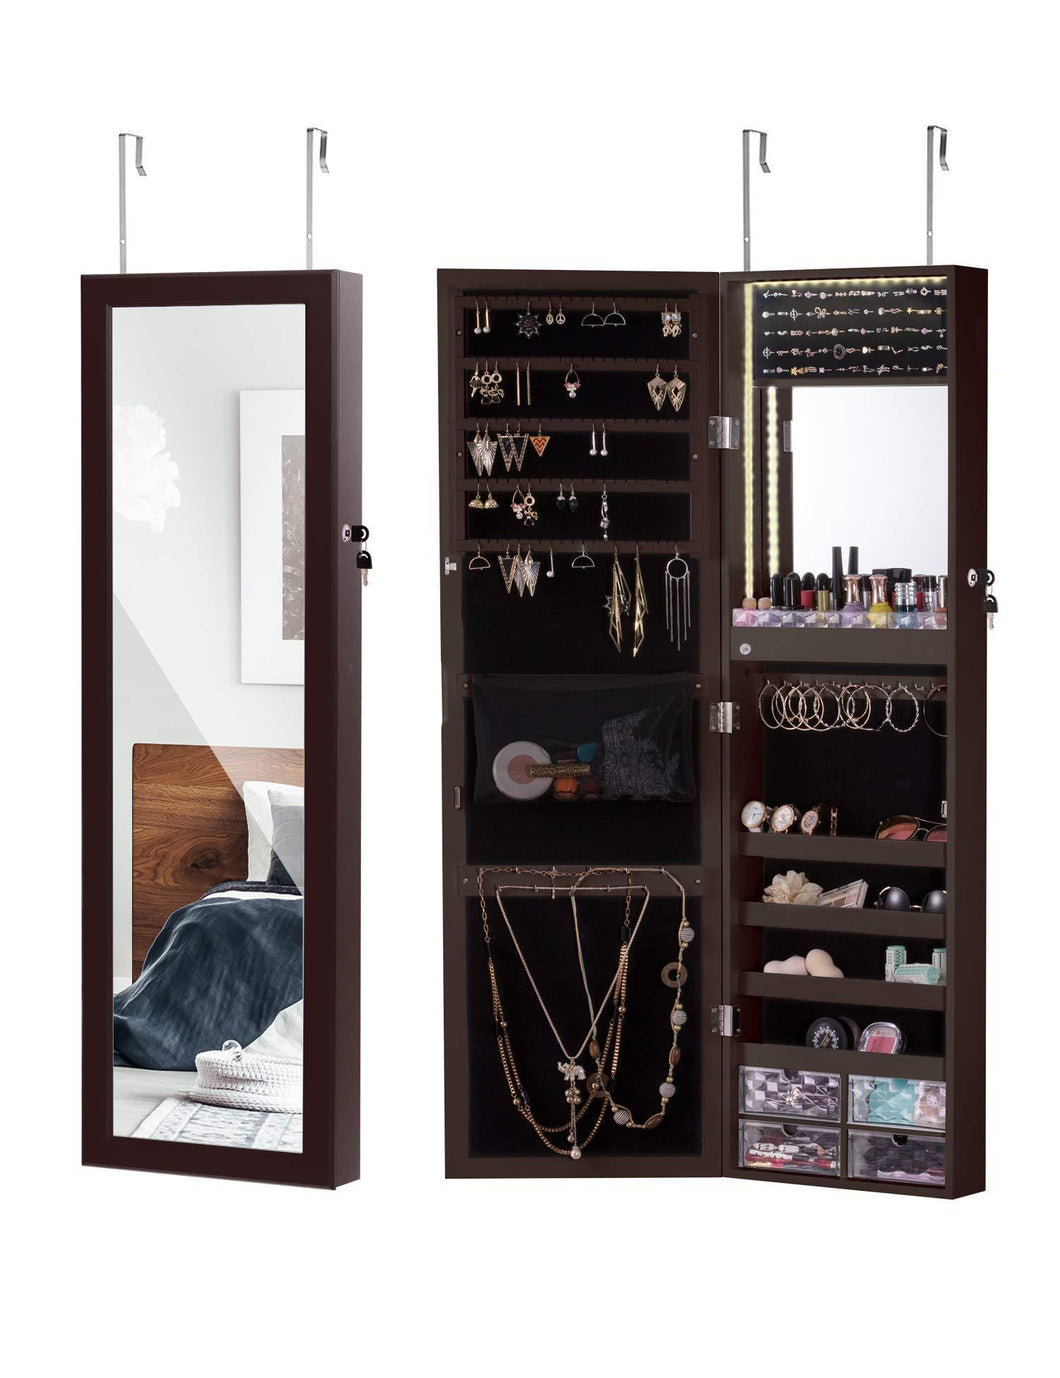 Discover luxfurni led light jewelry cabinet wall mount door hanging mirror makeup lockable armoire large storage organizer w drawers